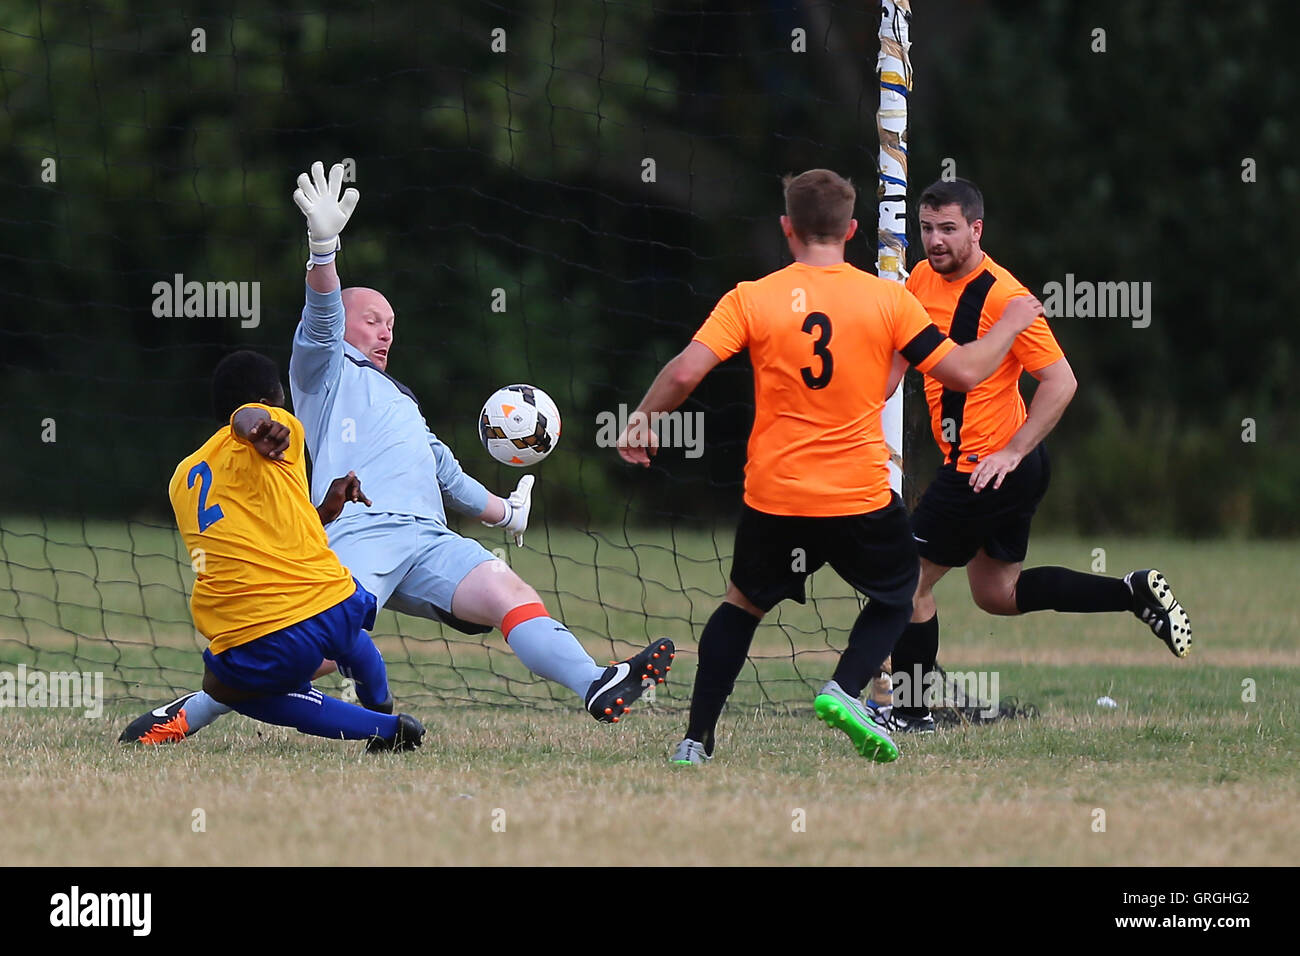 Mile End score their second goal during Mile End (yellow/blue) vs El Valiente, Hackney & Leyton Sunday League - Stock Image